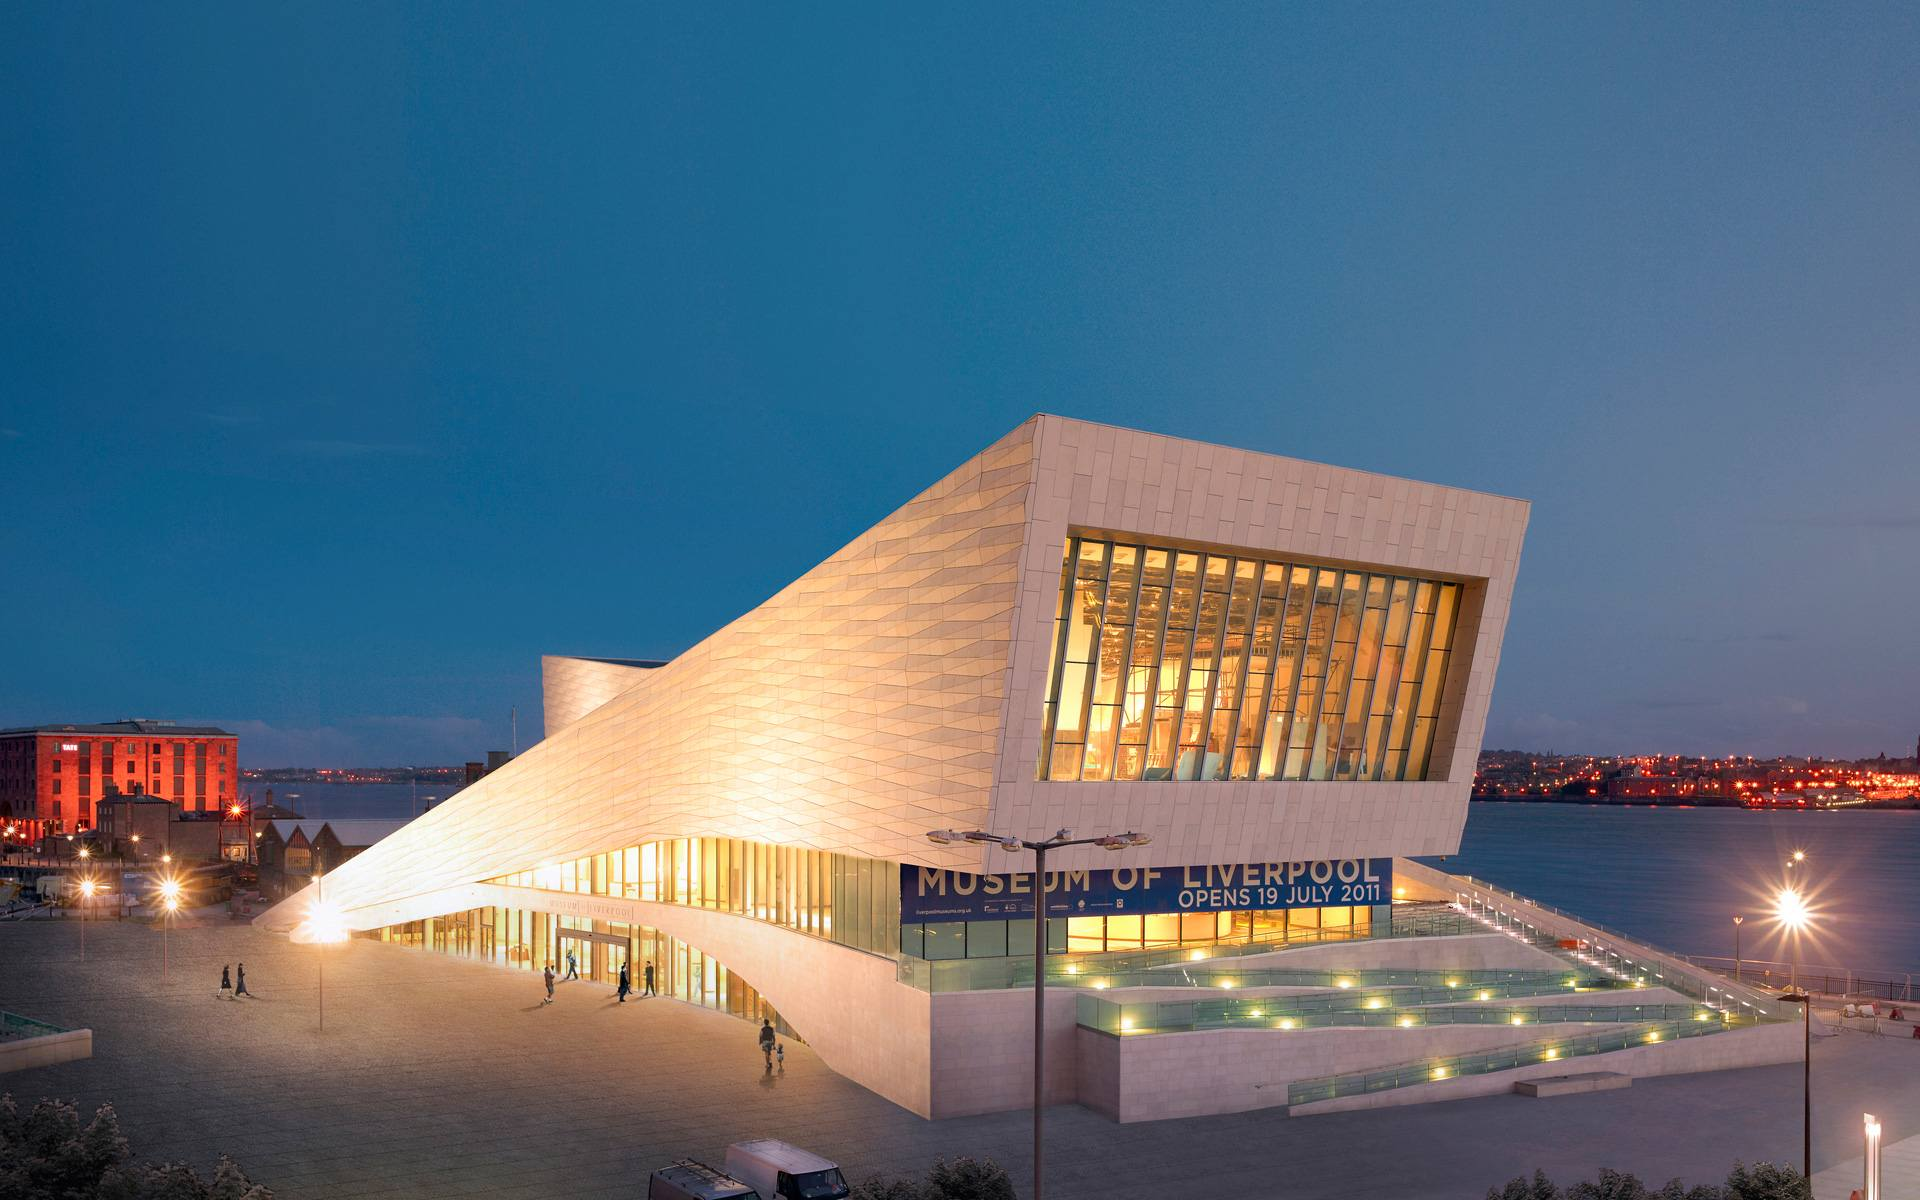 Museum of Liverpool Liverpool, Museum of Liverpool by 3XN | the PhotoPhore